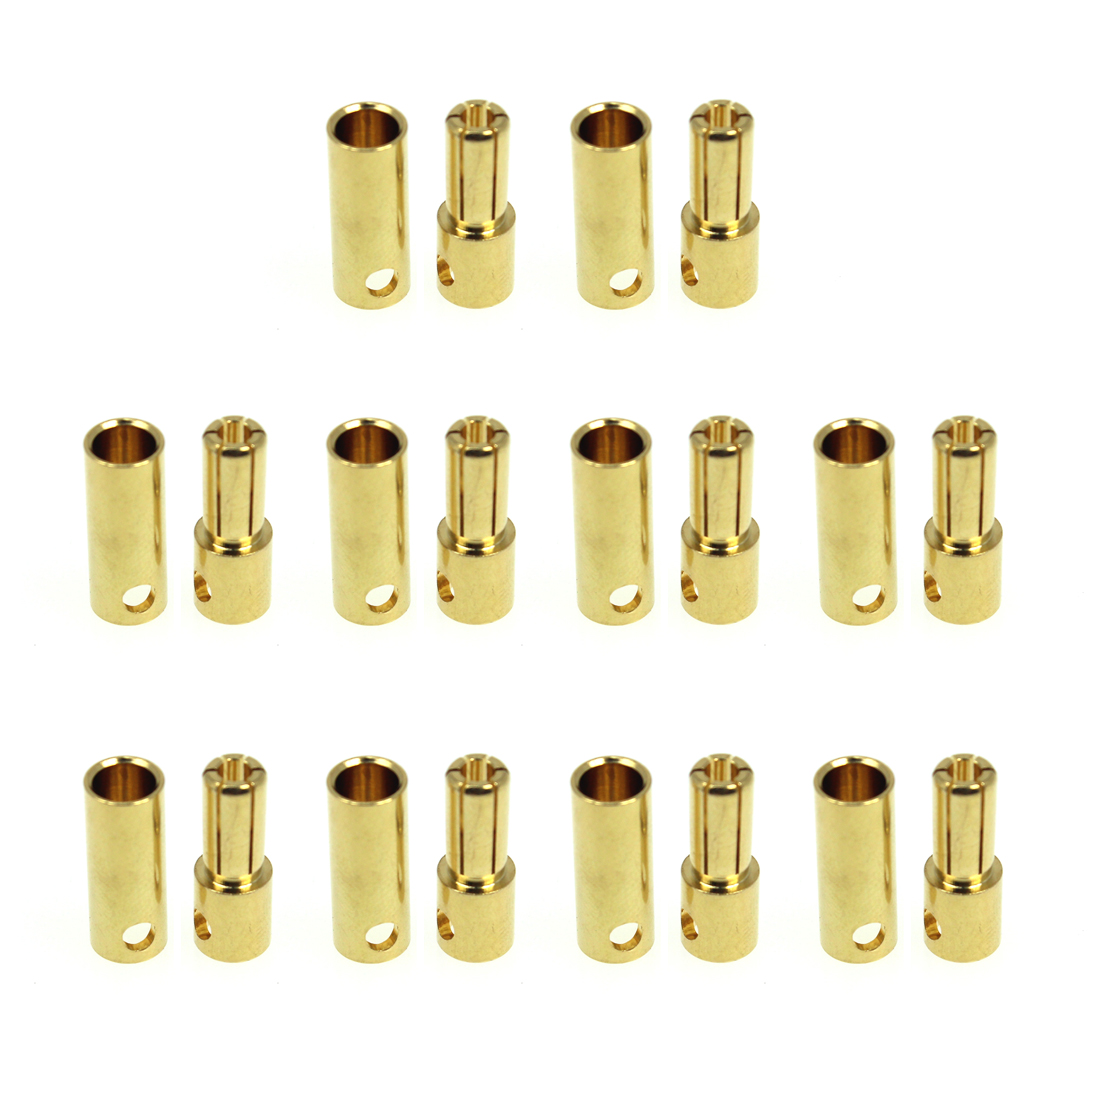 5 Set 3.5mm Gold Bullet Banana Connector plug 3.5 mm Thick Gold BS$T